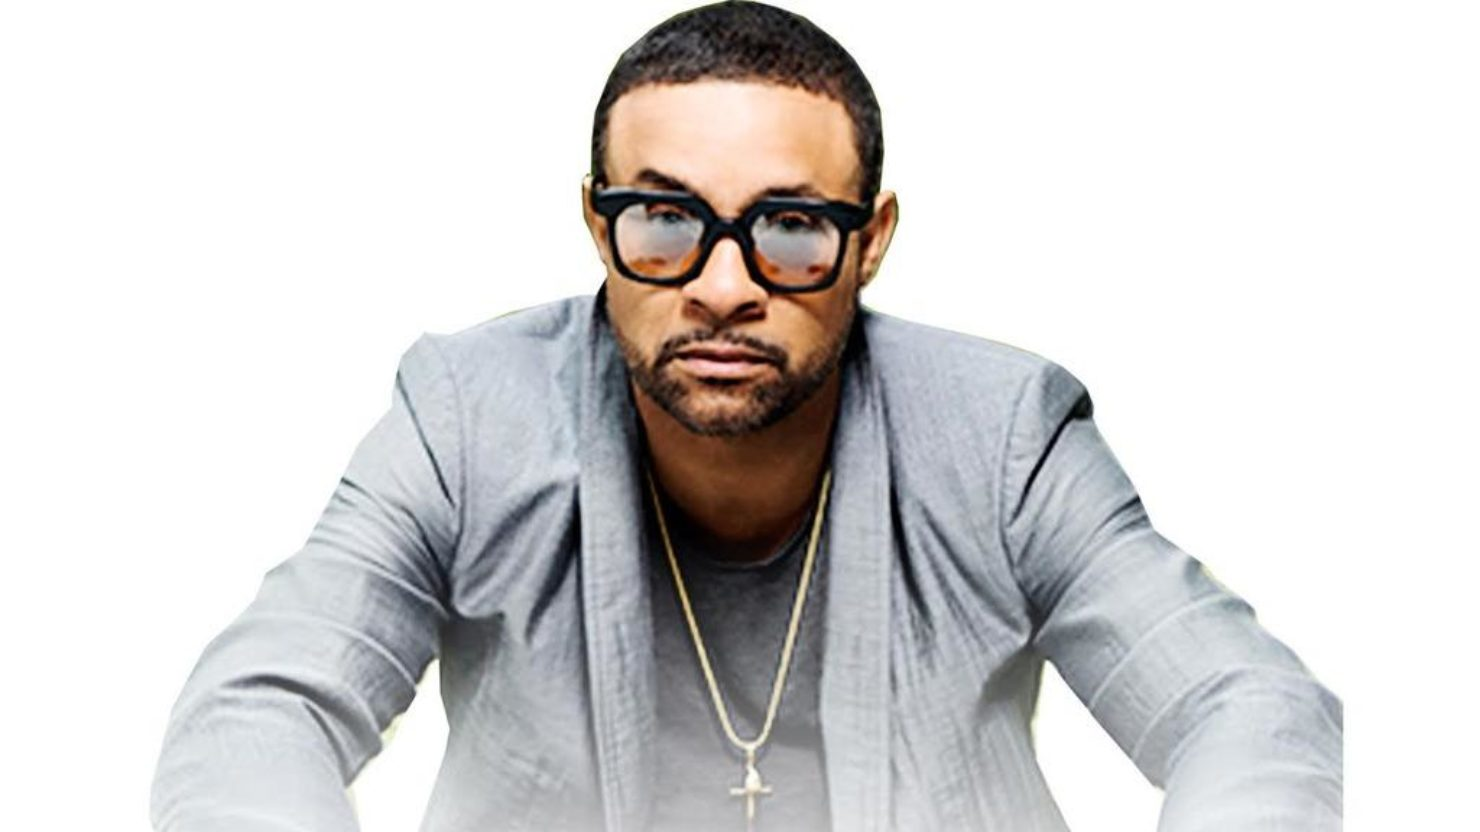 Jamaican artist Shaggy announces release date for his first solo